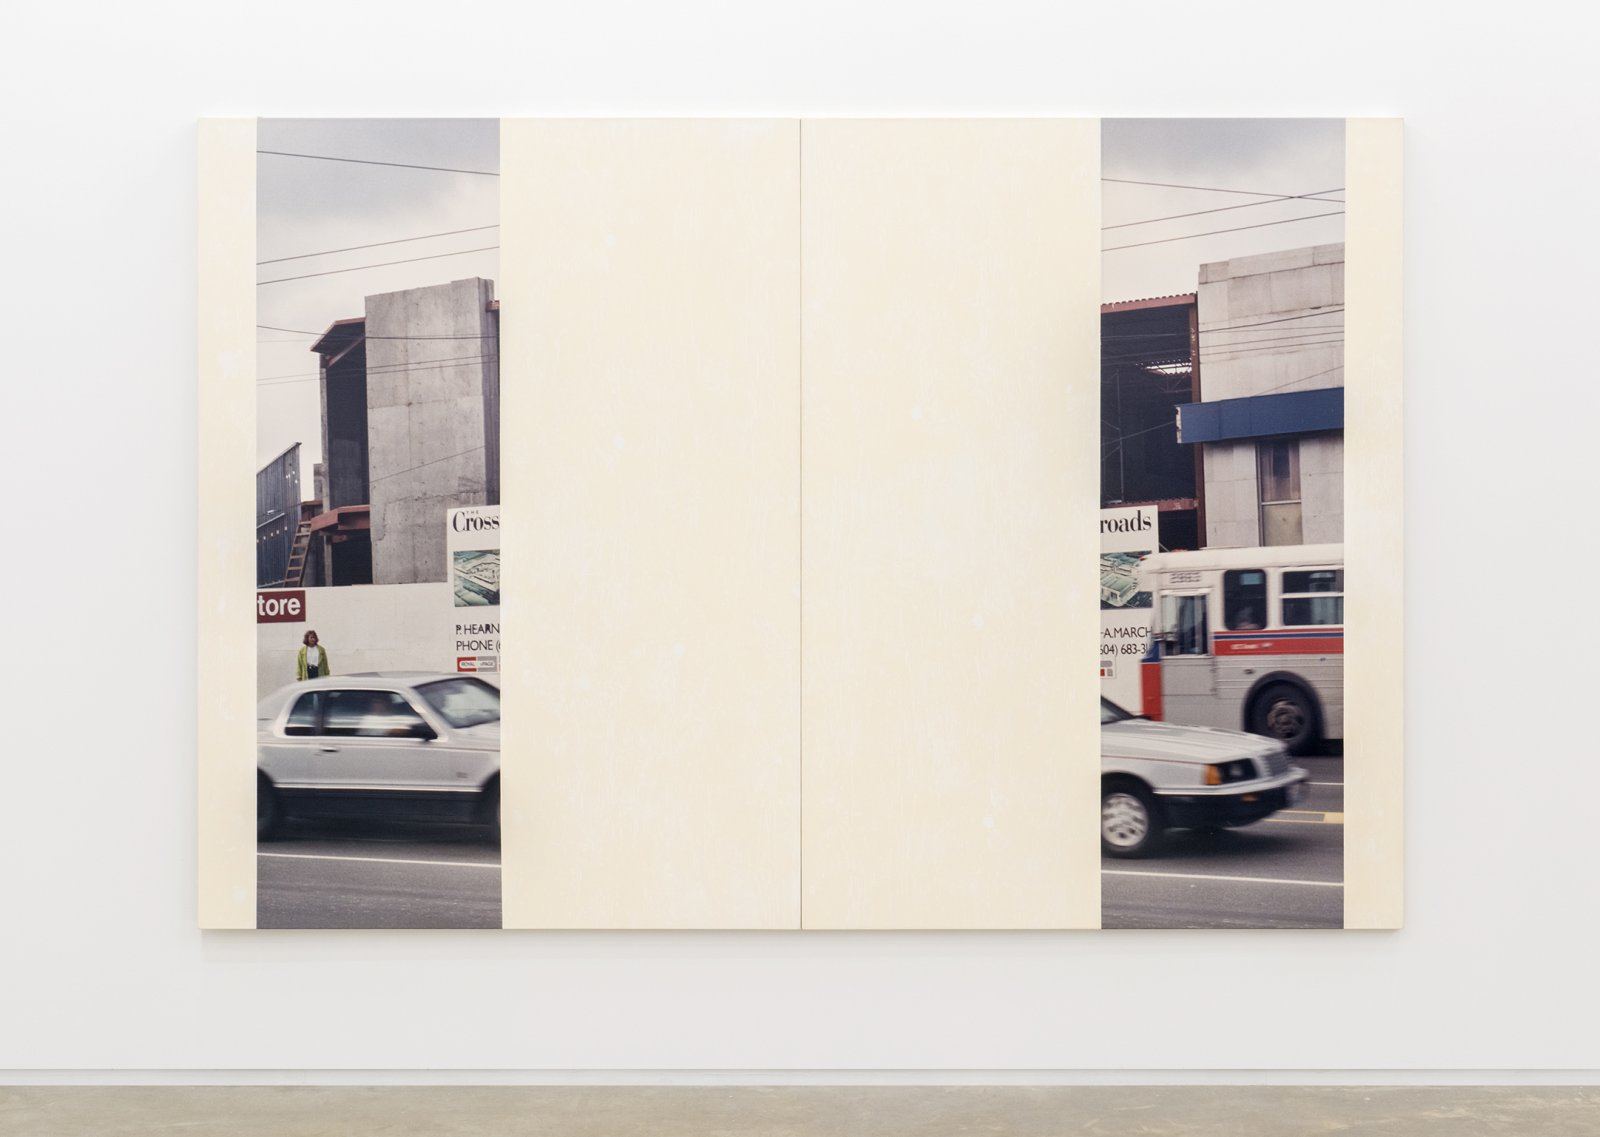 Ian Wallace, In the Street (Cologne Series IV), 1989, diptych, photolaminate with acrylic and monoprint on canvas, each panel: 80 x 60 in. (203 x 152 cm) by Ian Wallace